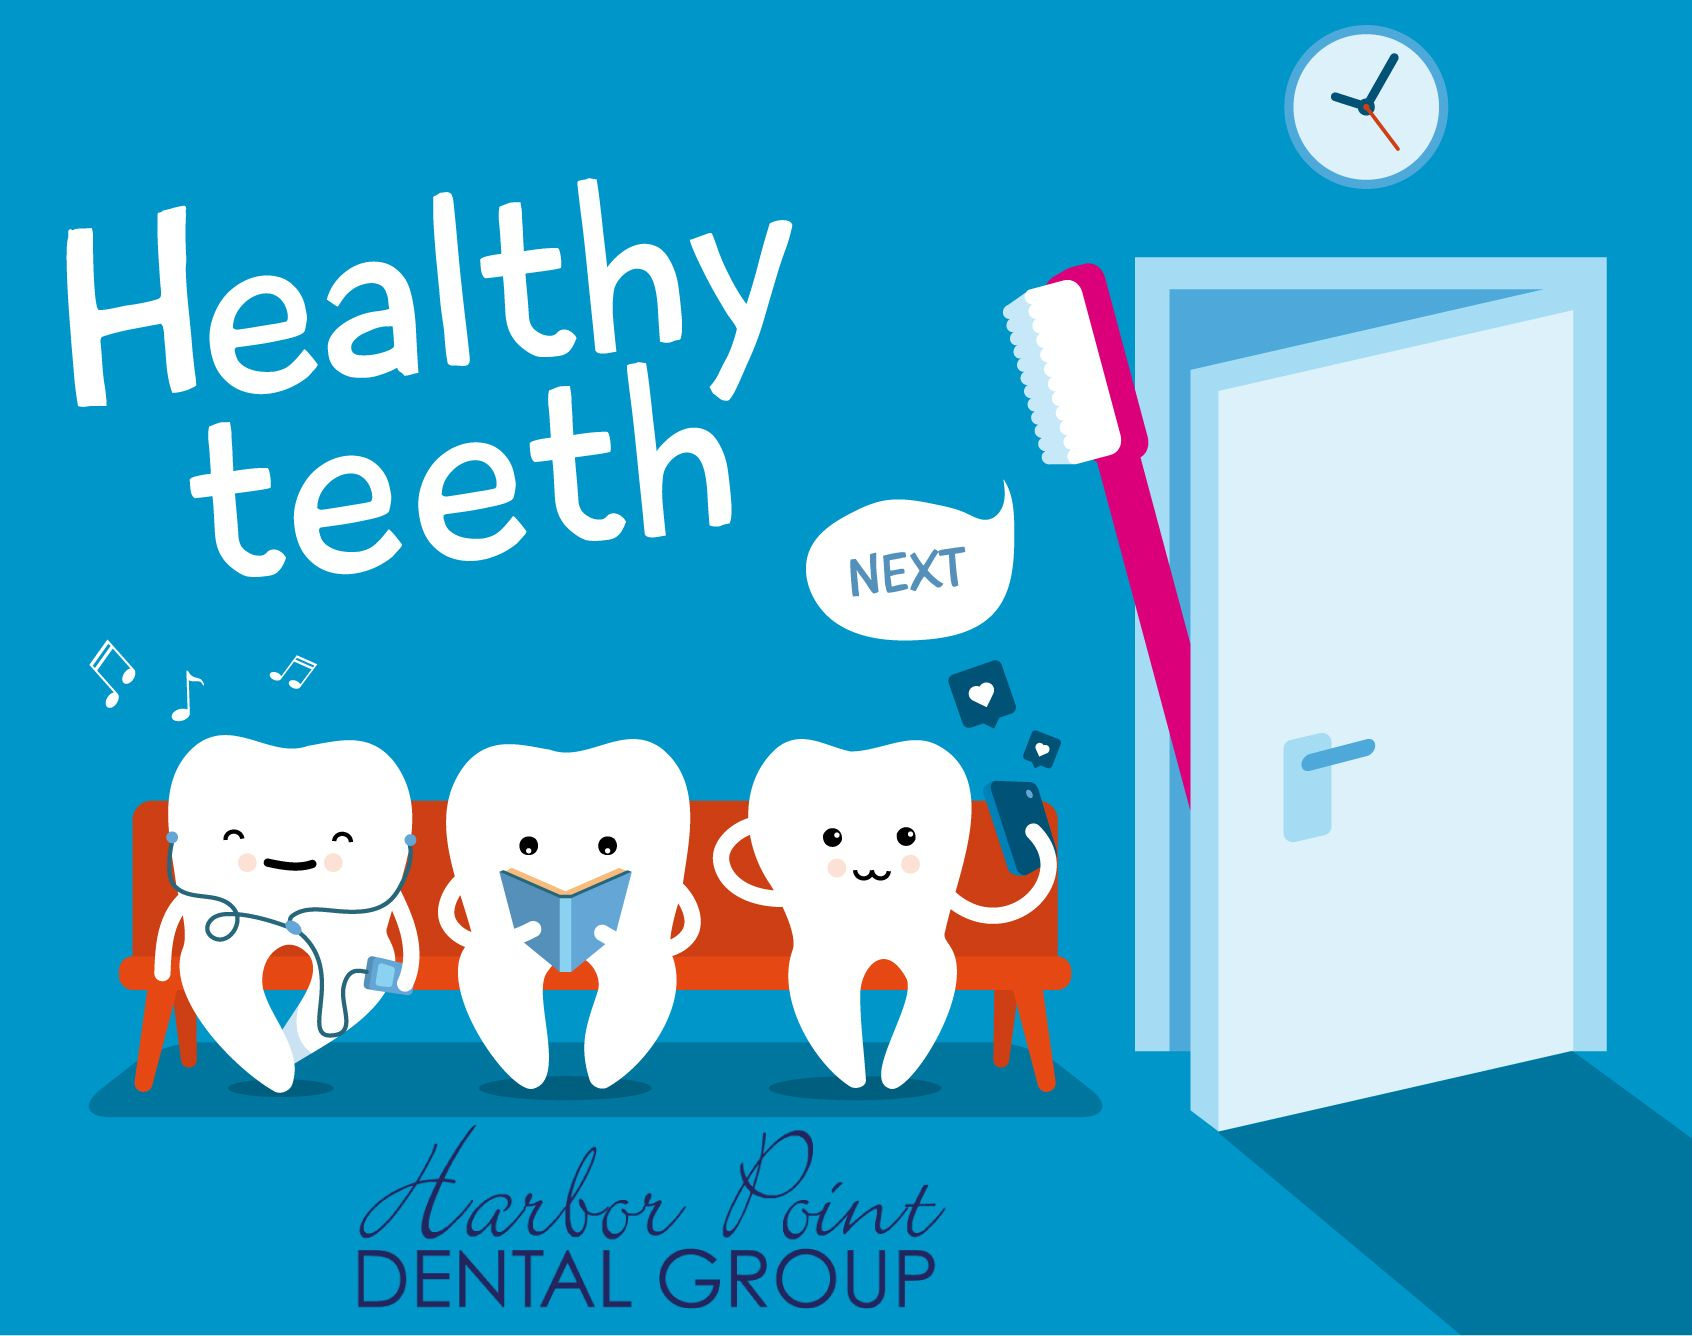 Schedule your dentist appointment with us today. http